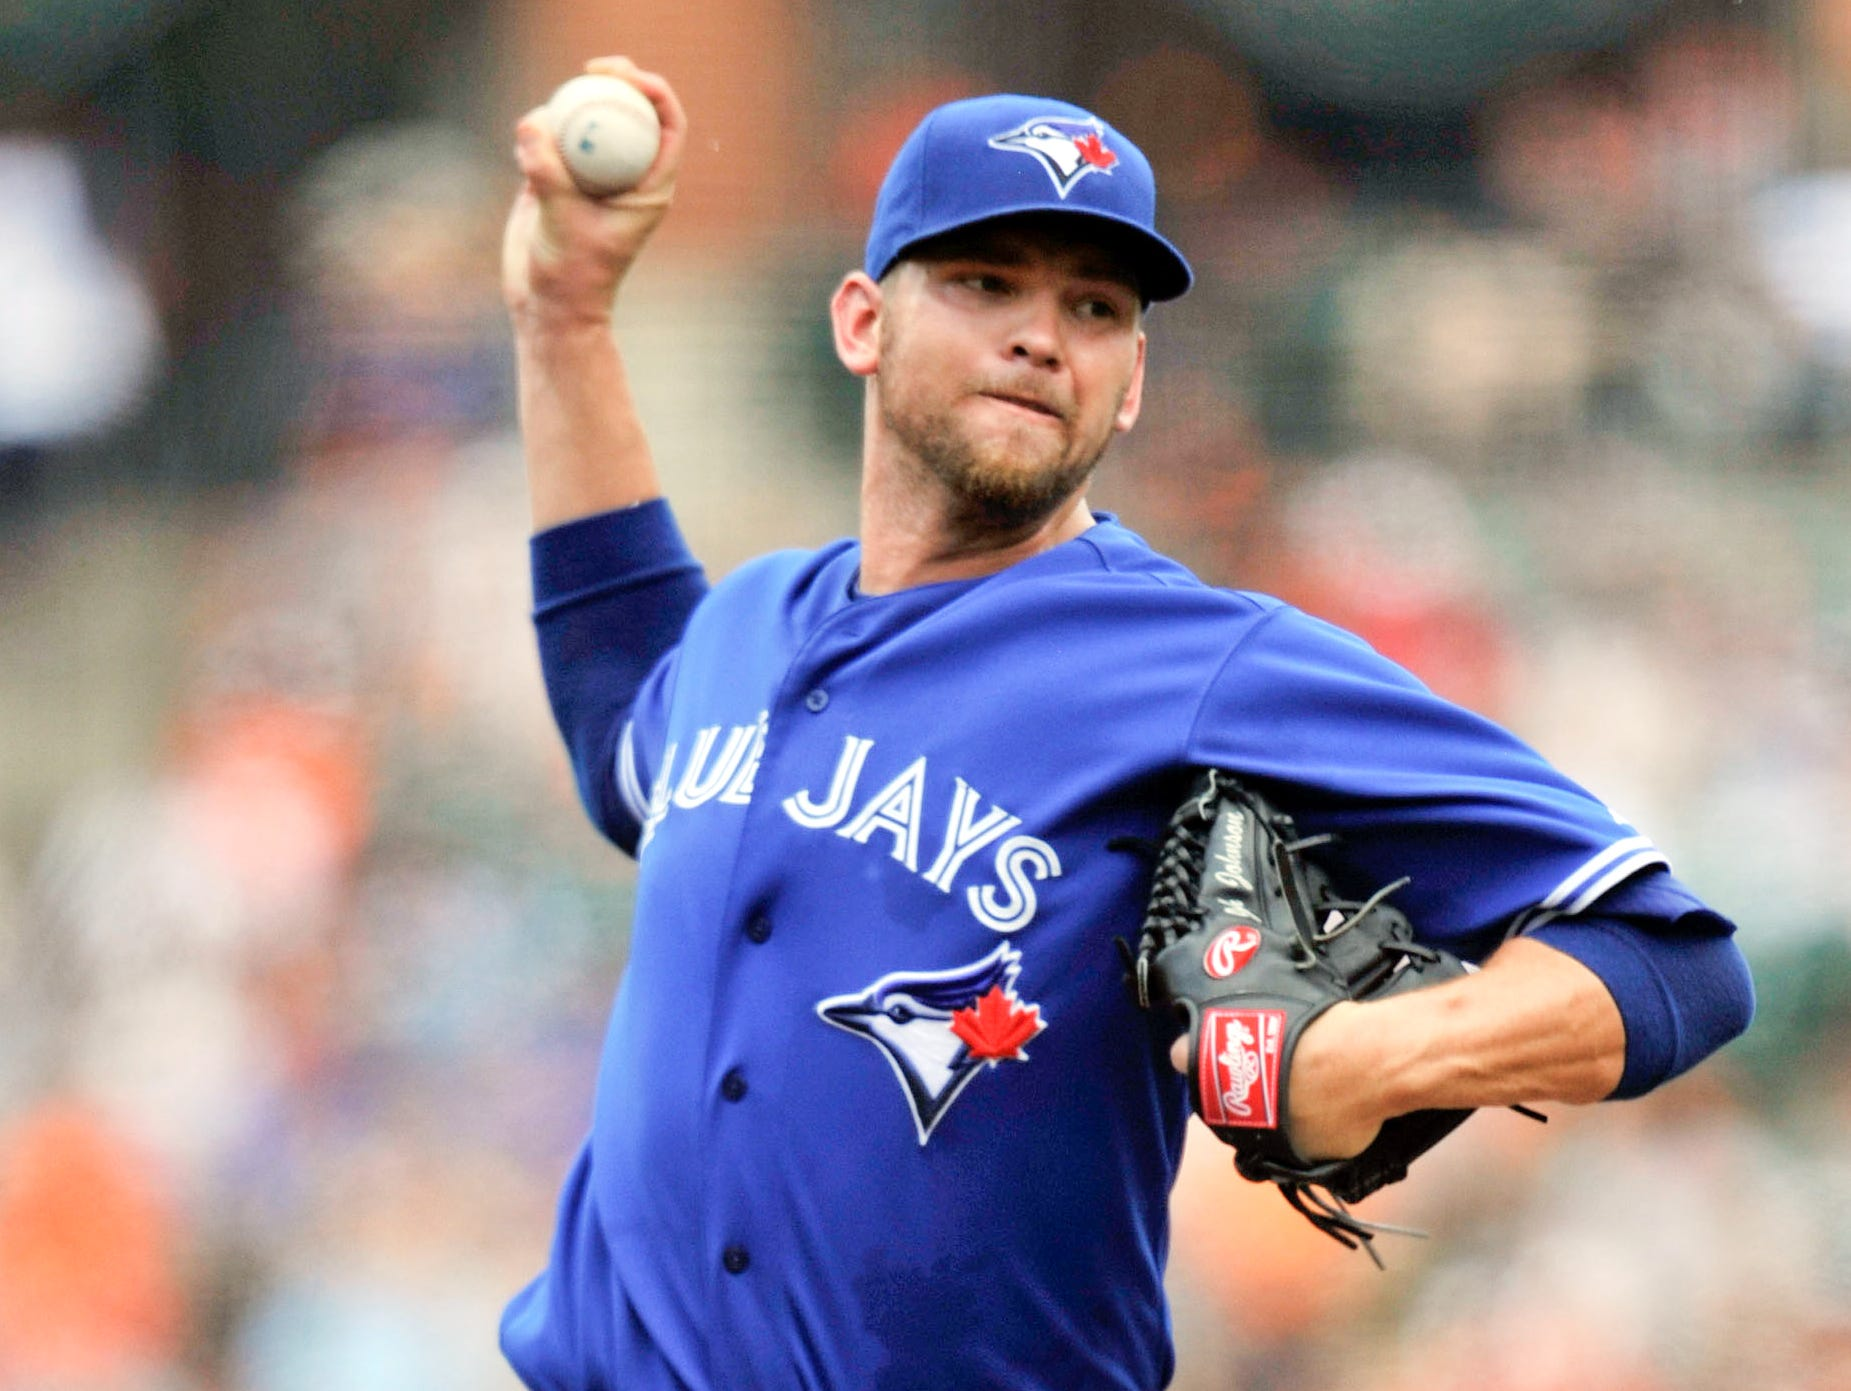 Aug. 13: Toronto Blue Jays pitcher Josh Johnson is on the 60-day disabled list with forearm soreness.